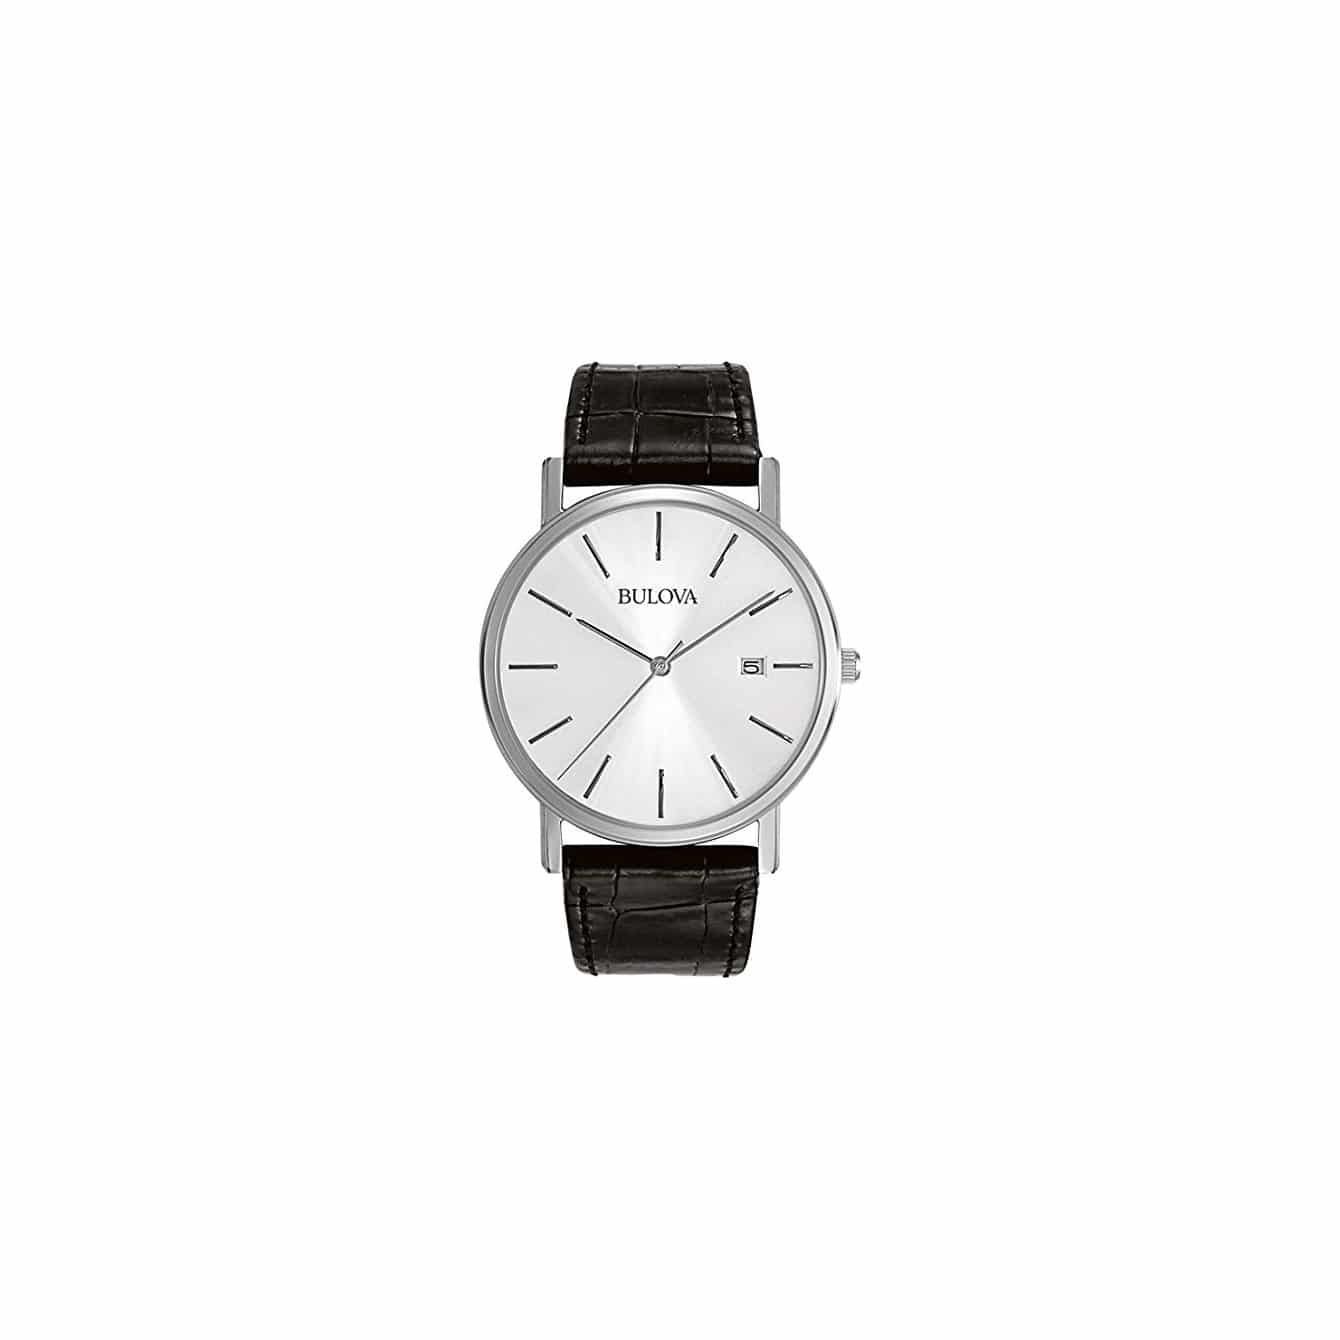 Bulova 96B104 Quartz Watch